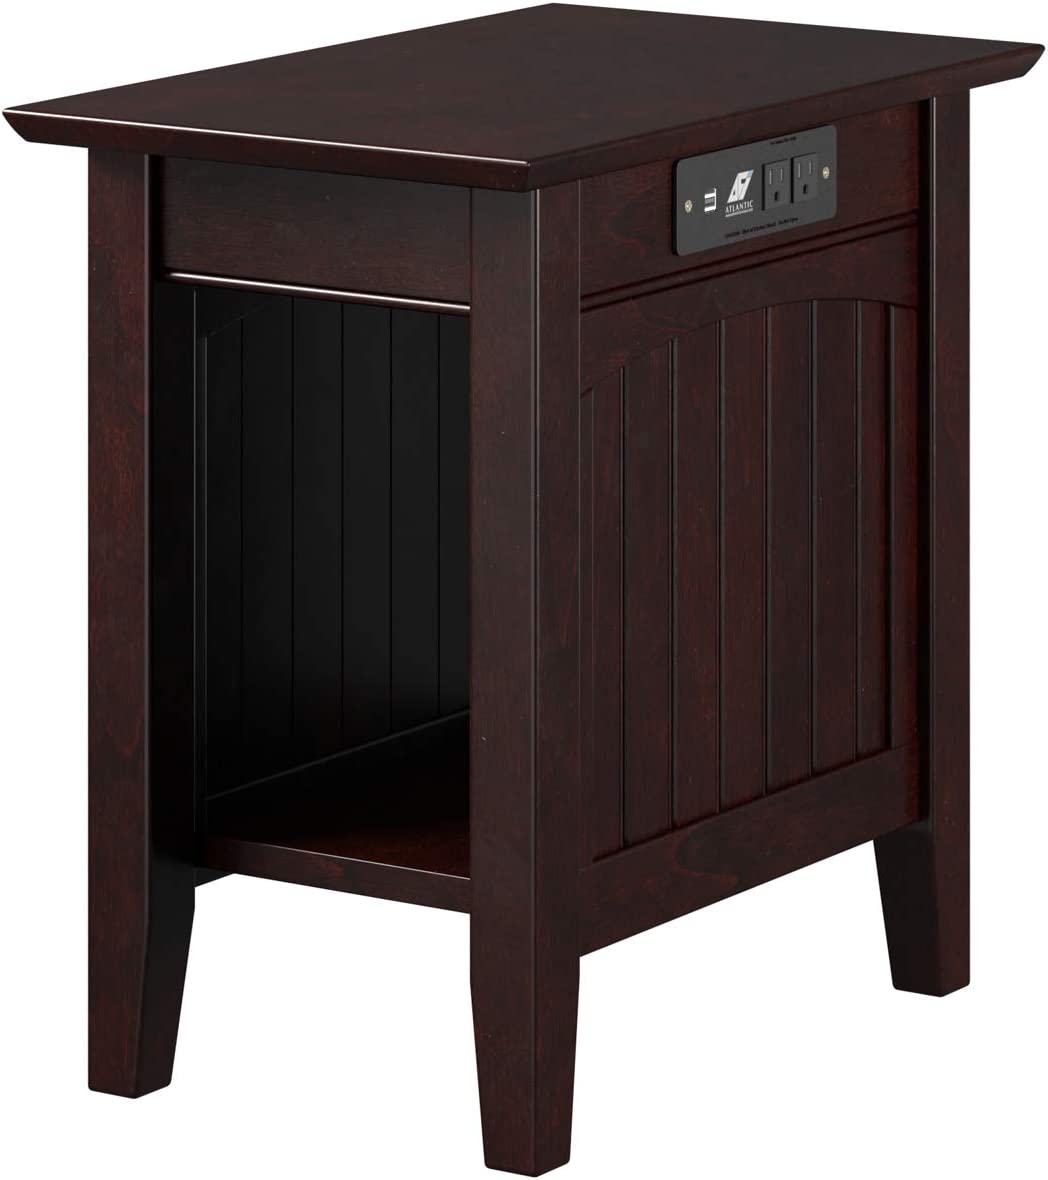 Atlantic Furniture AH13311 Nantucket Chair Side Table, Espresso